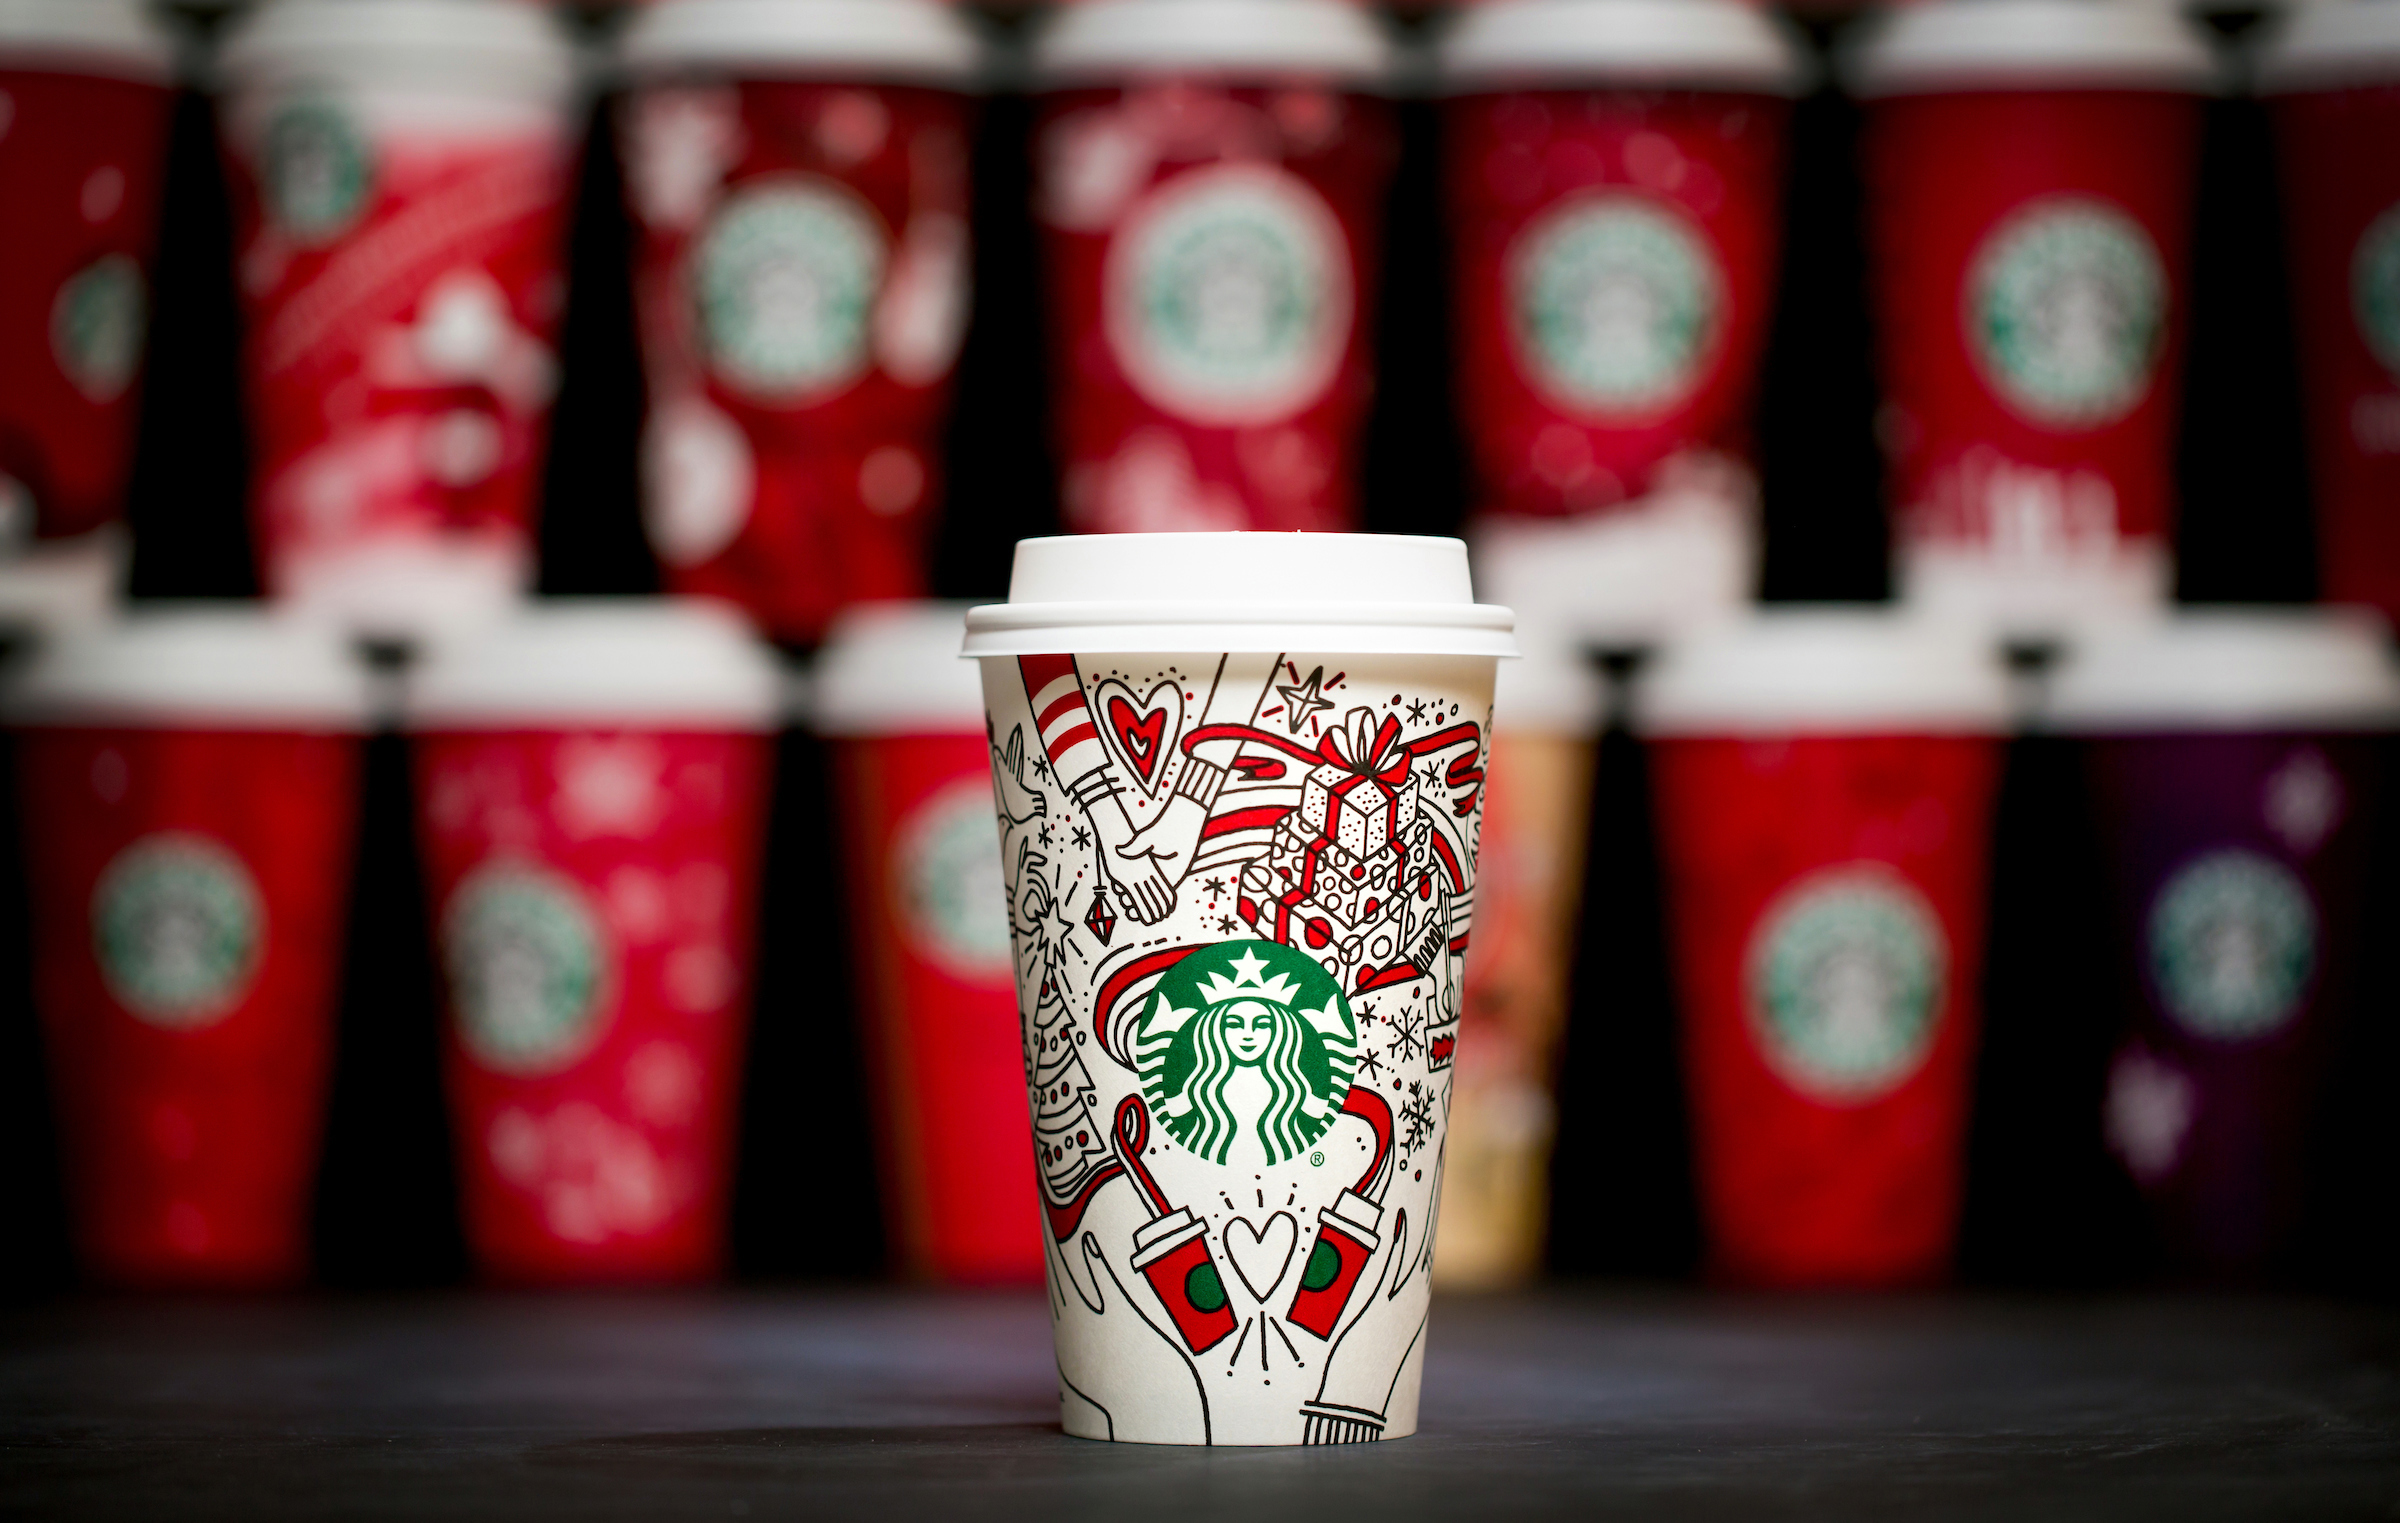 For 20 years, Starbucks have released a range of holiday cup designs, most of them based around their world famous red cup. It's not easy to find the very first Starbucks holiday cups, which made their debut in stores in 1997. Few were saved, and electronic design files were lost in an earthquake in 2001. Even an Internet search is unyielding, with the cups having made their arrival long before the first selfie. But, we have them here! Click on for a photos of all 20 holidays cup designs. (Image: Joshua Trujillo/Cover Images)